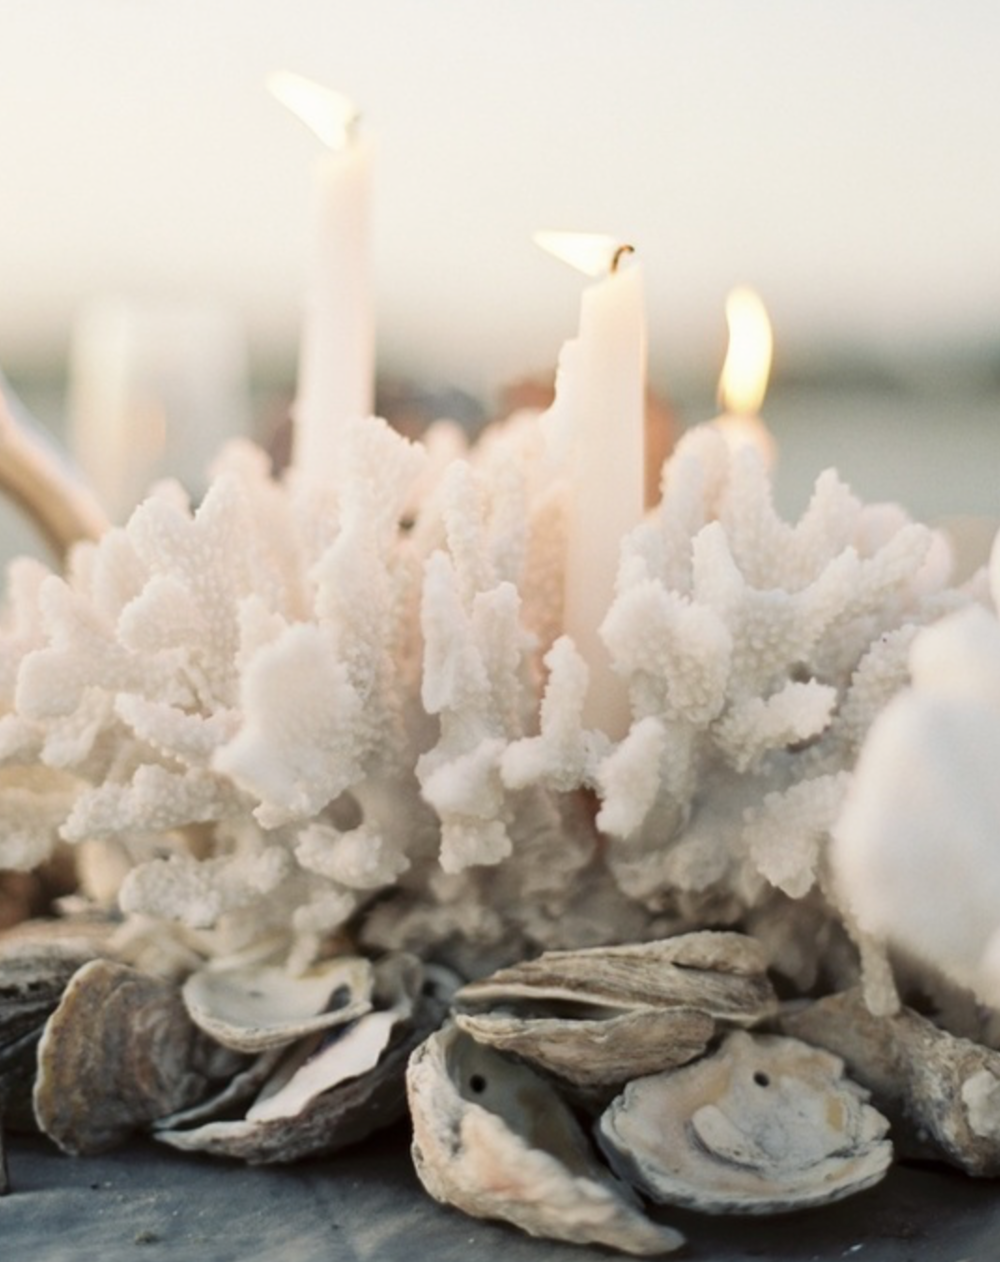 Oyster Shell & Coral centerpiece in place of a floral piece. Use what you have in your surroundings.